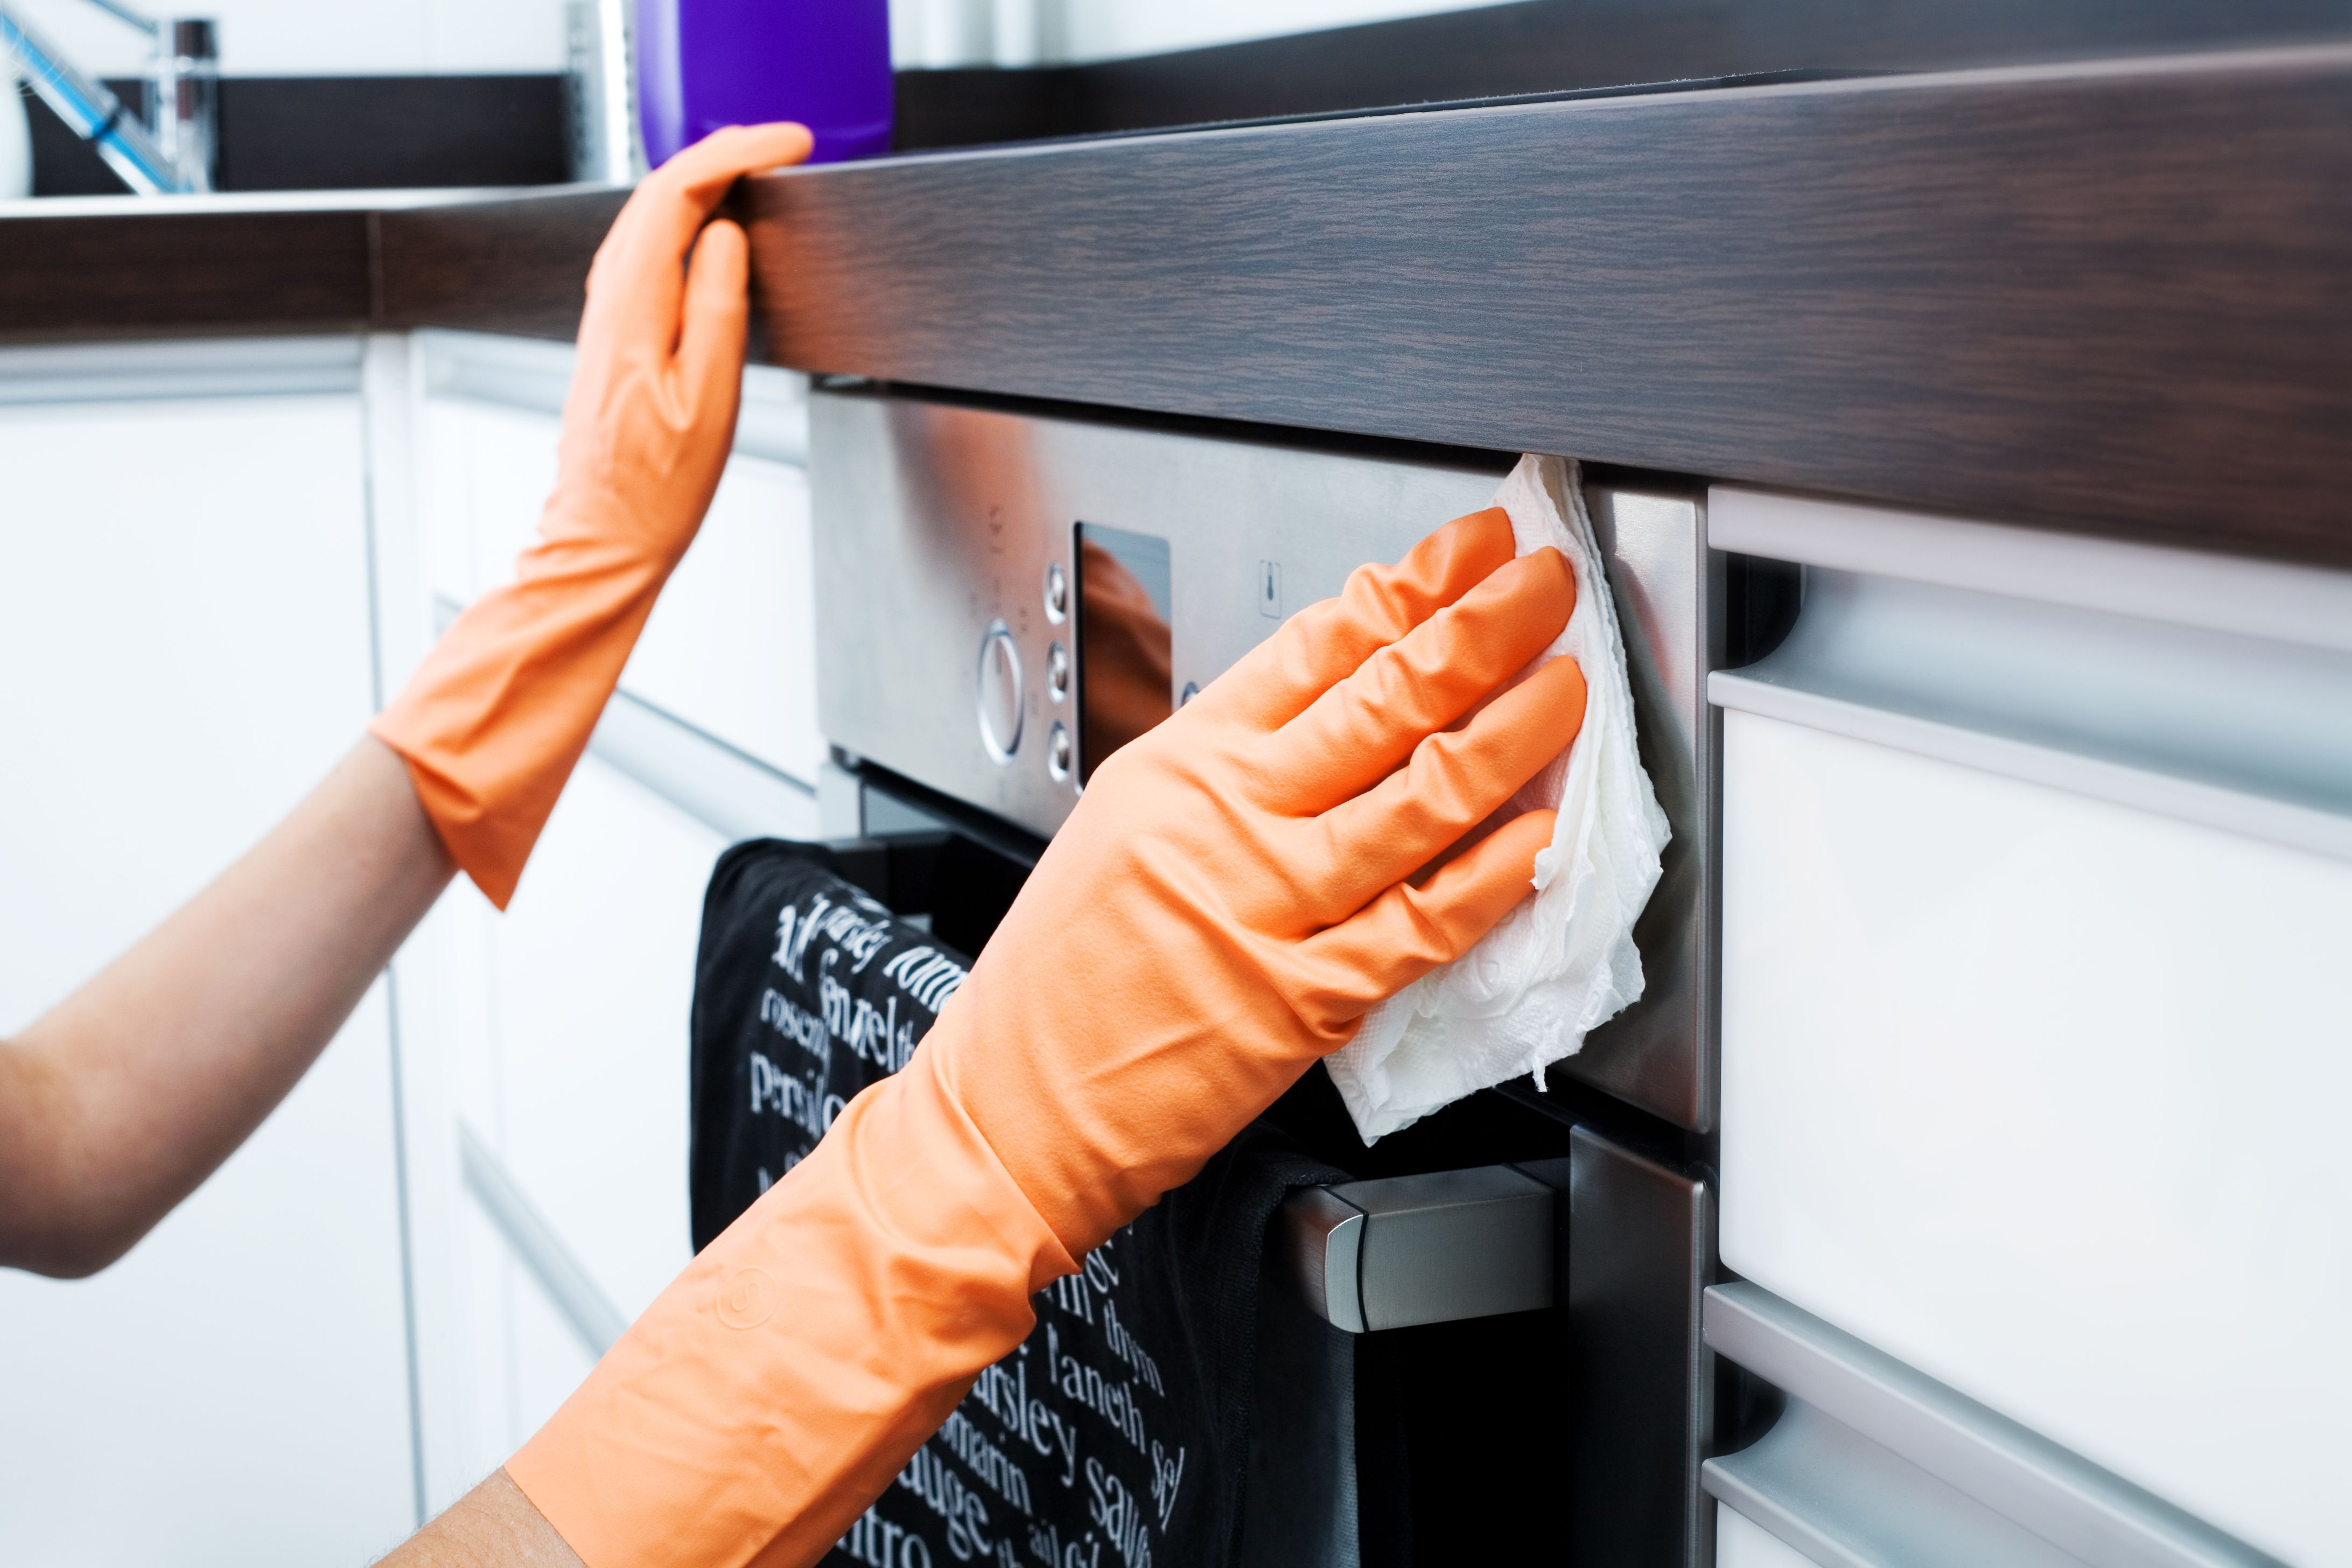 How To Clean Stainless Steel Appliances Easily Best Way To Clean Stainless Steel